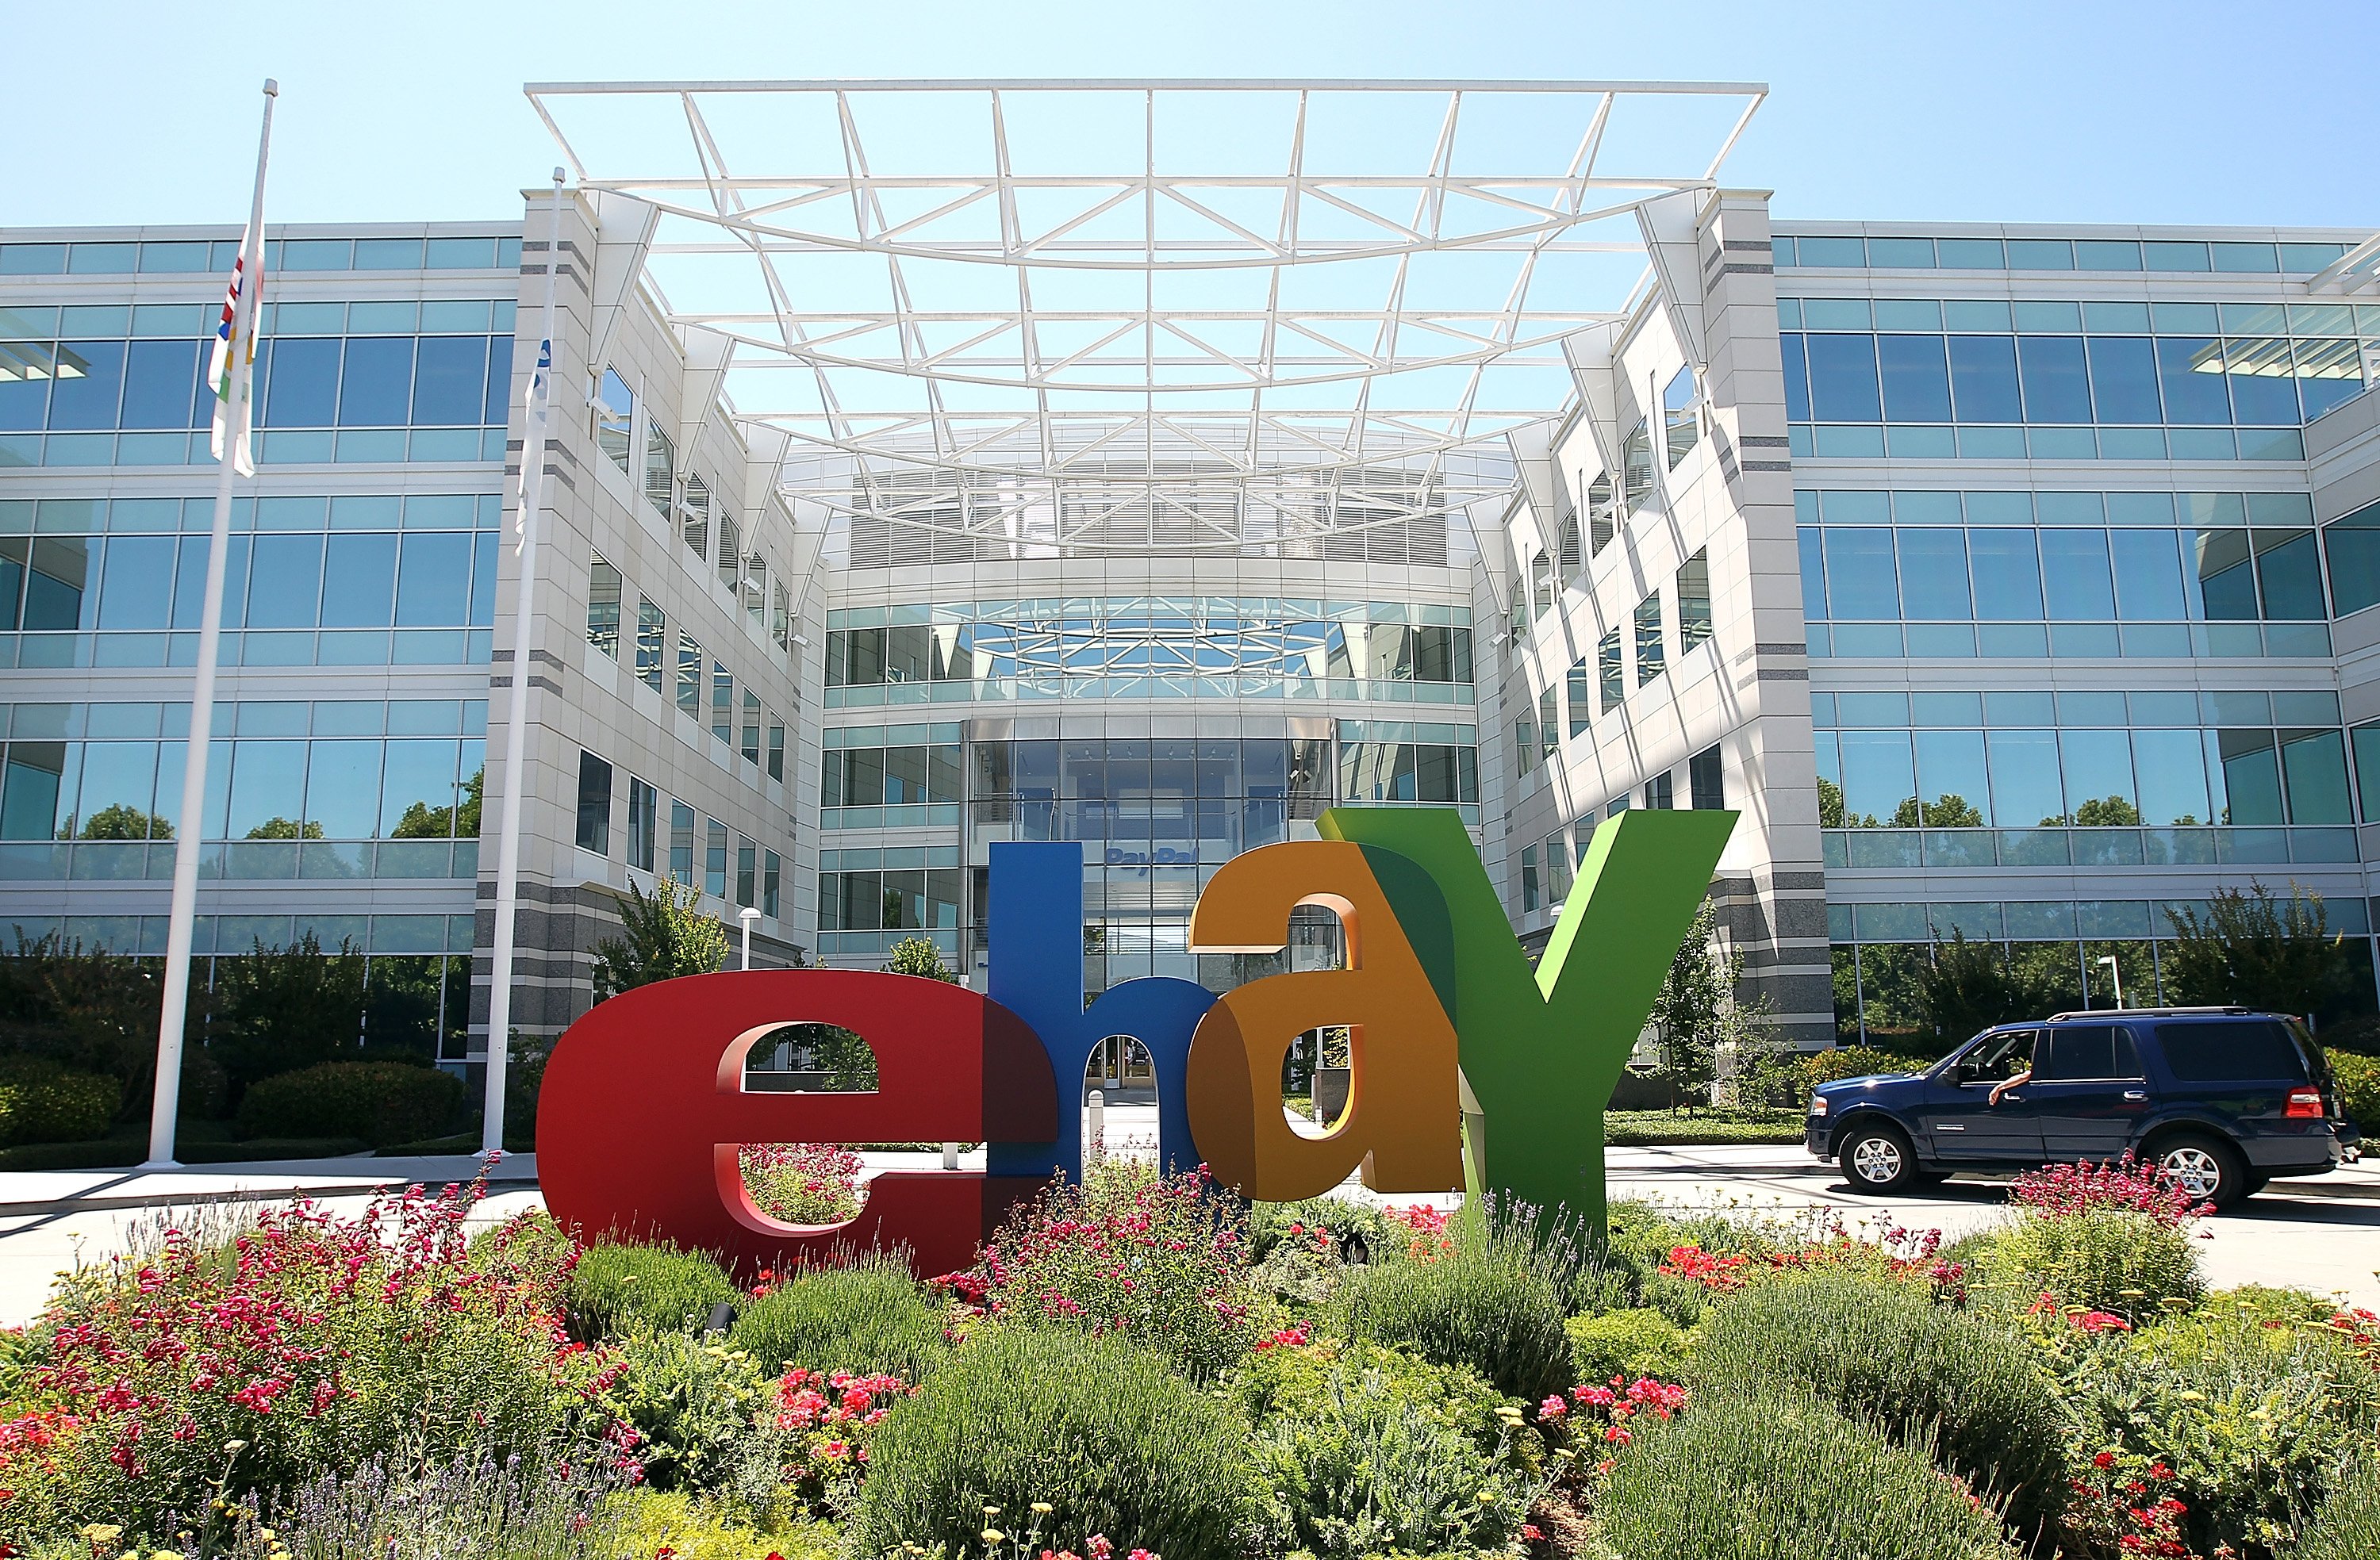 eBay readies another China push through upcoming partnership with Xiu.com